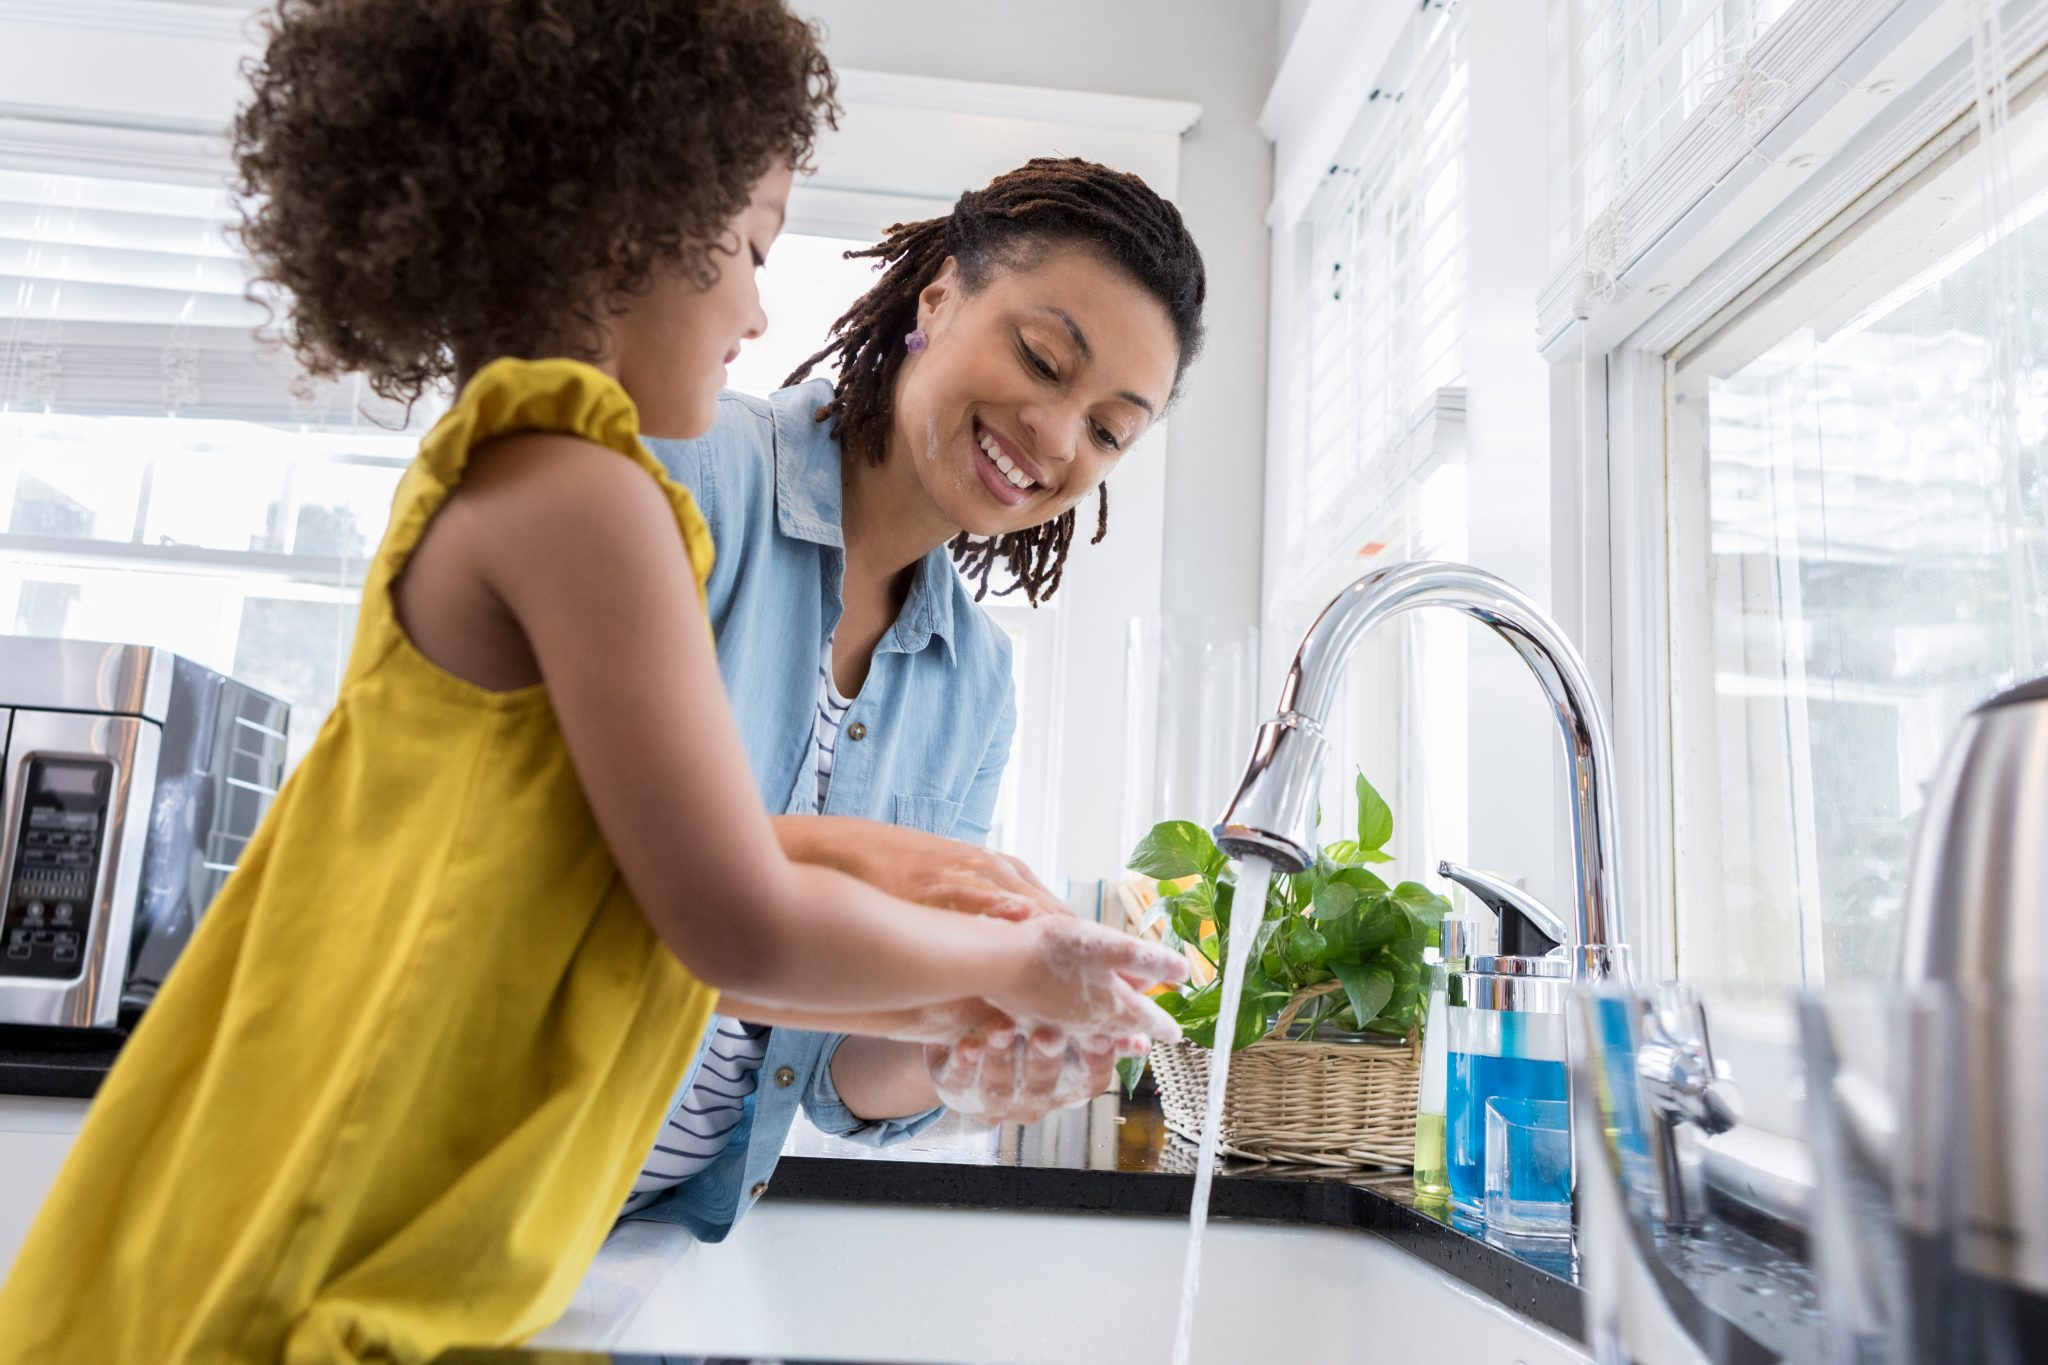 Mom helping daughter wash hands